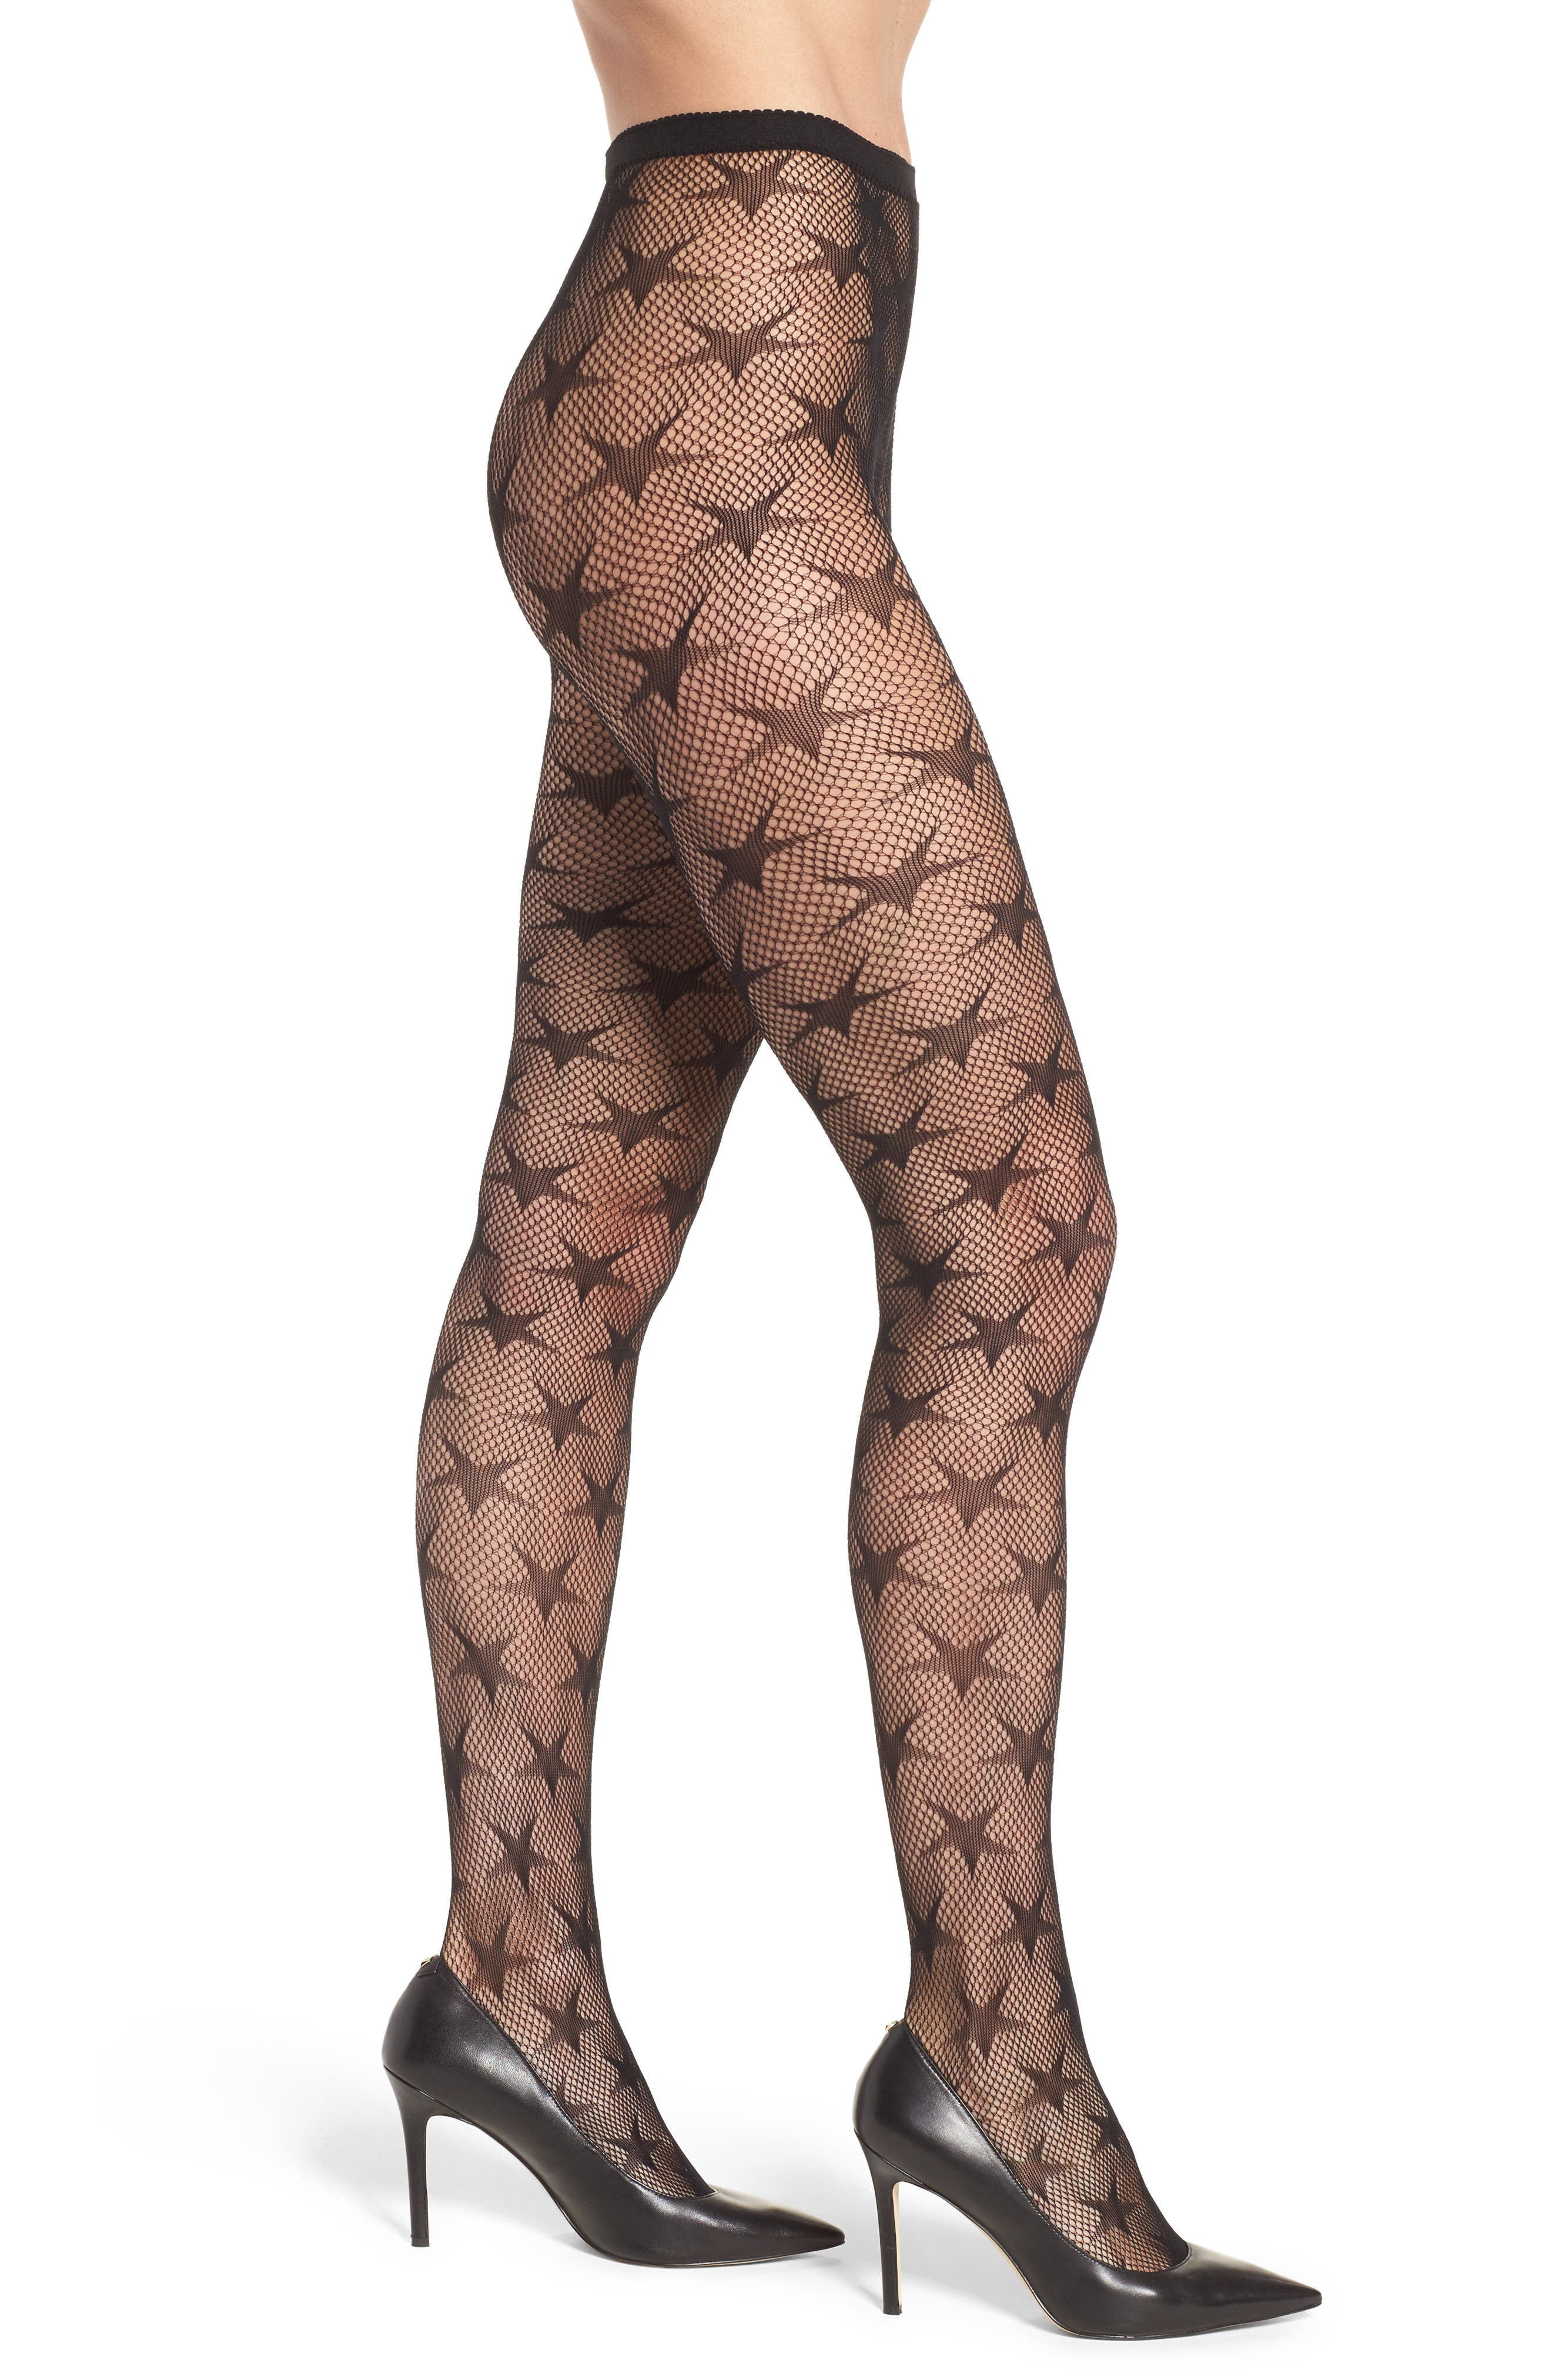 Star Net Tights,                         Main,                         color, 001